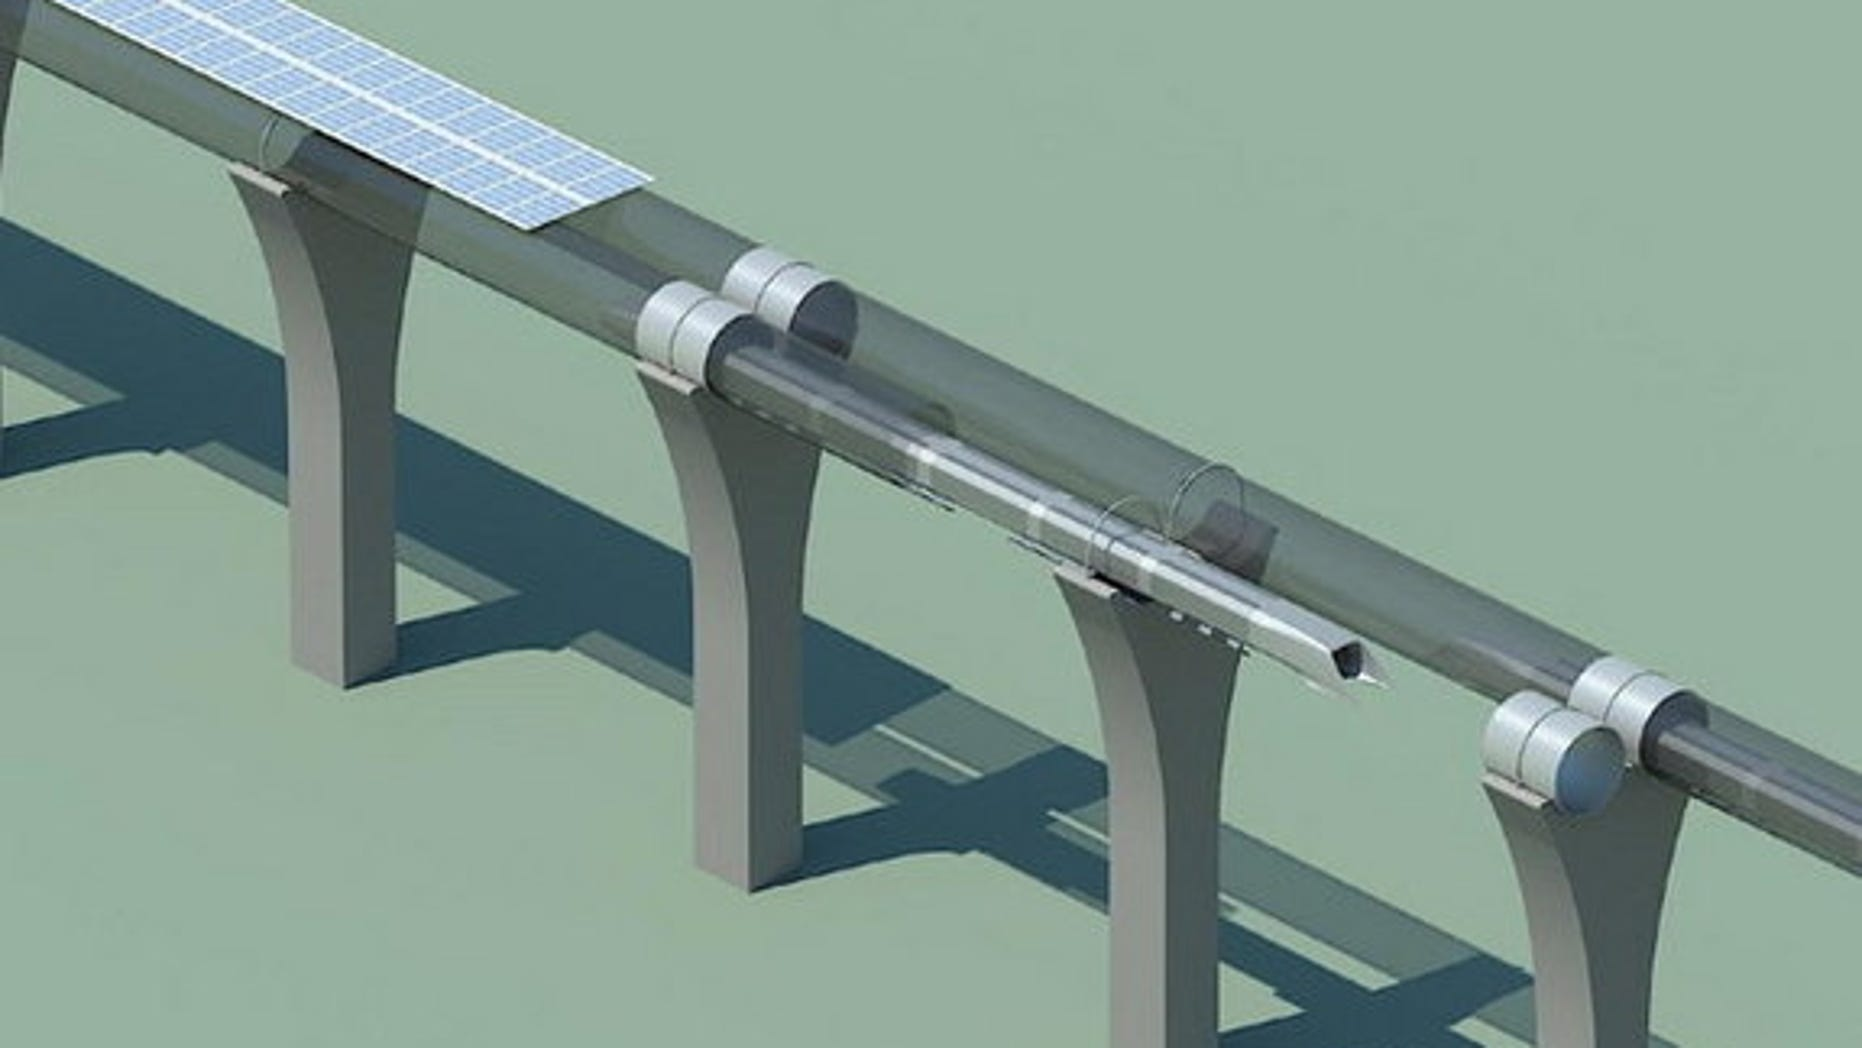 Hyperloop capsule in tube cutaway with attached solar arrays.